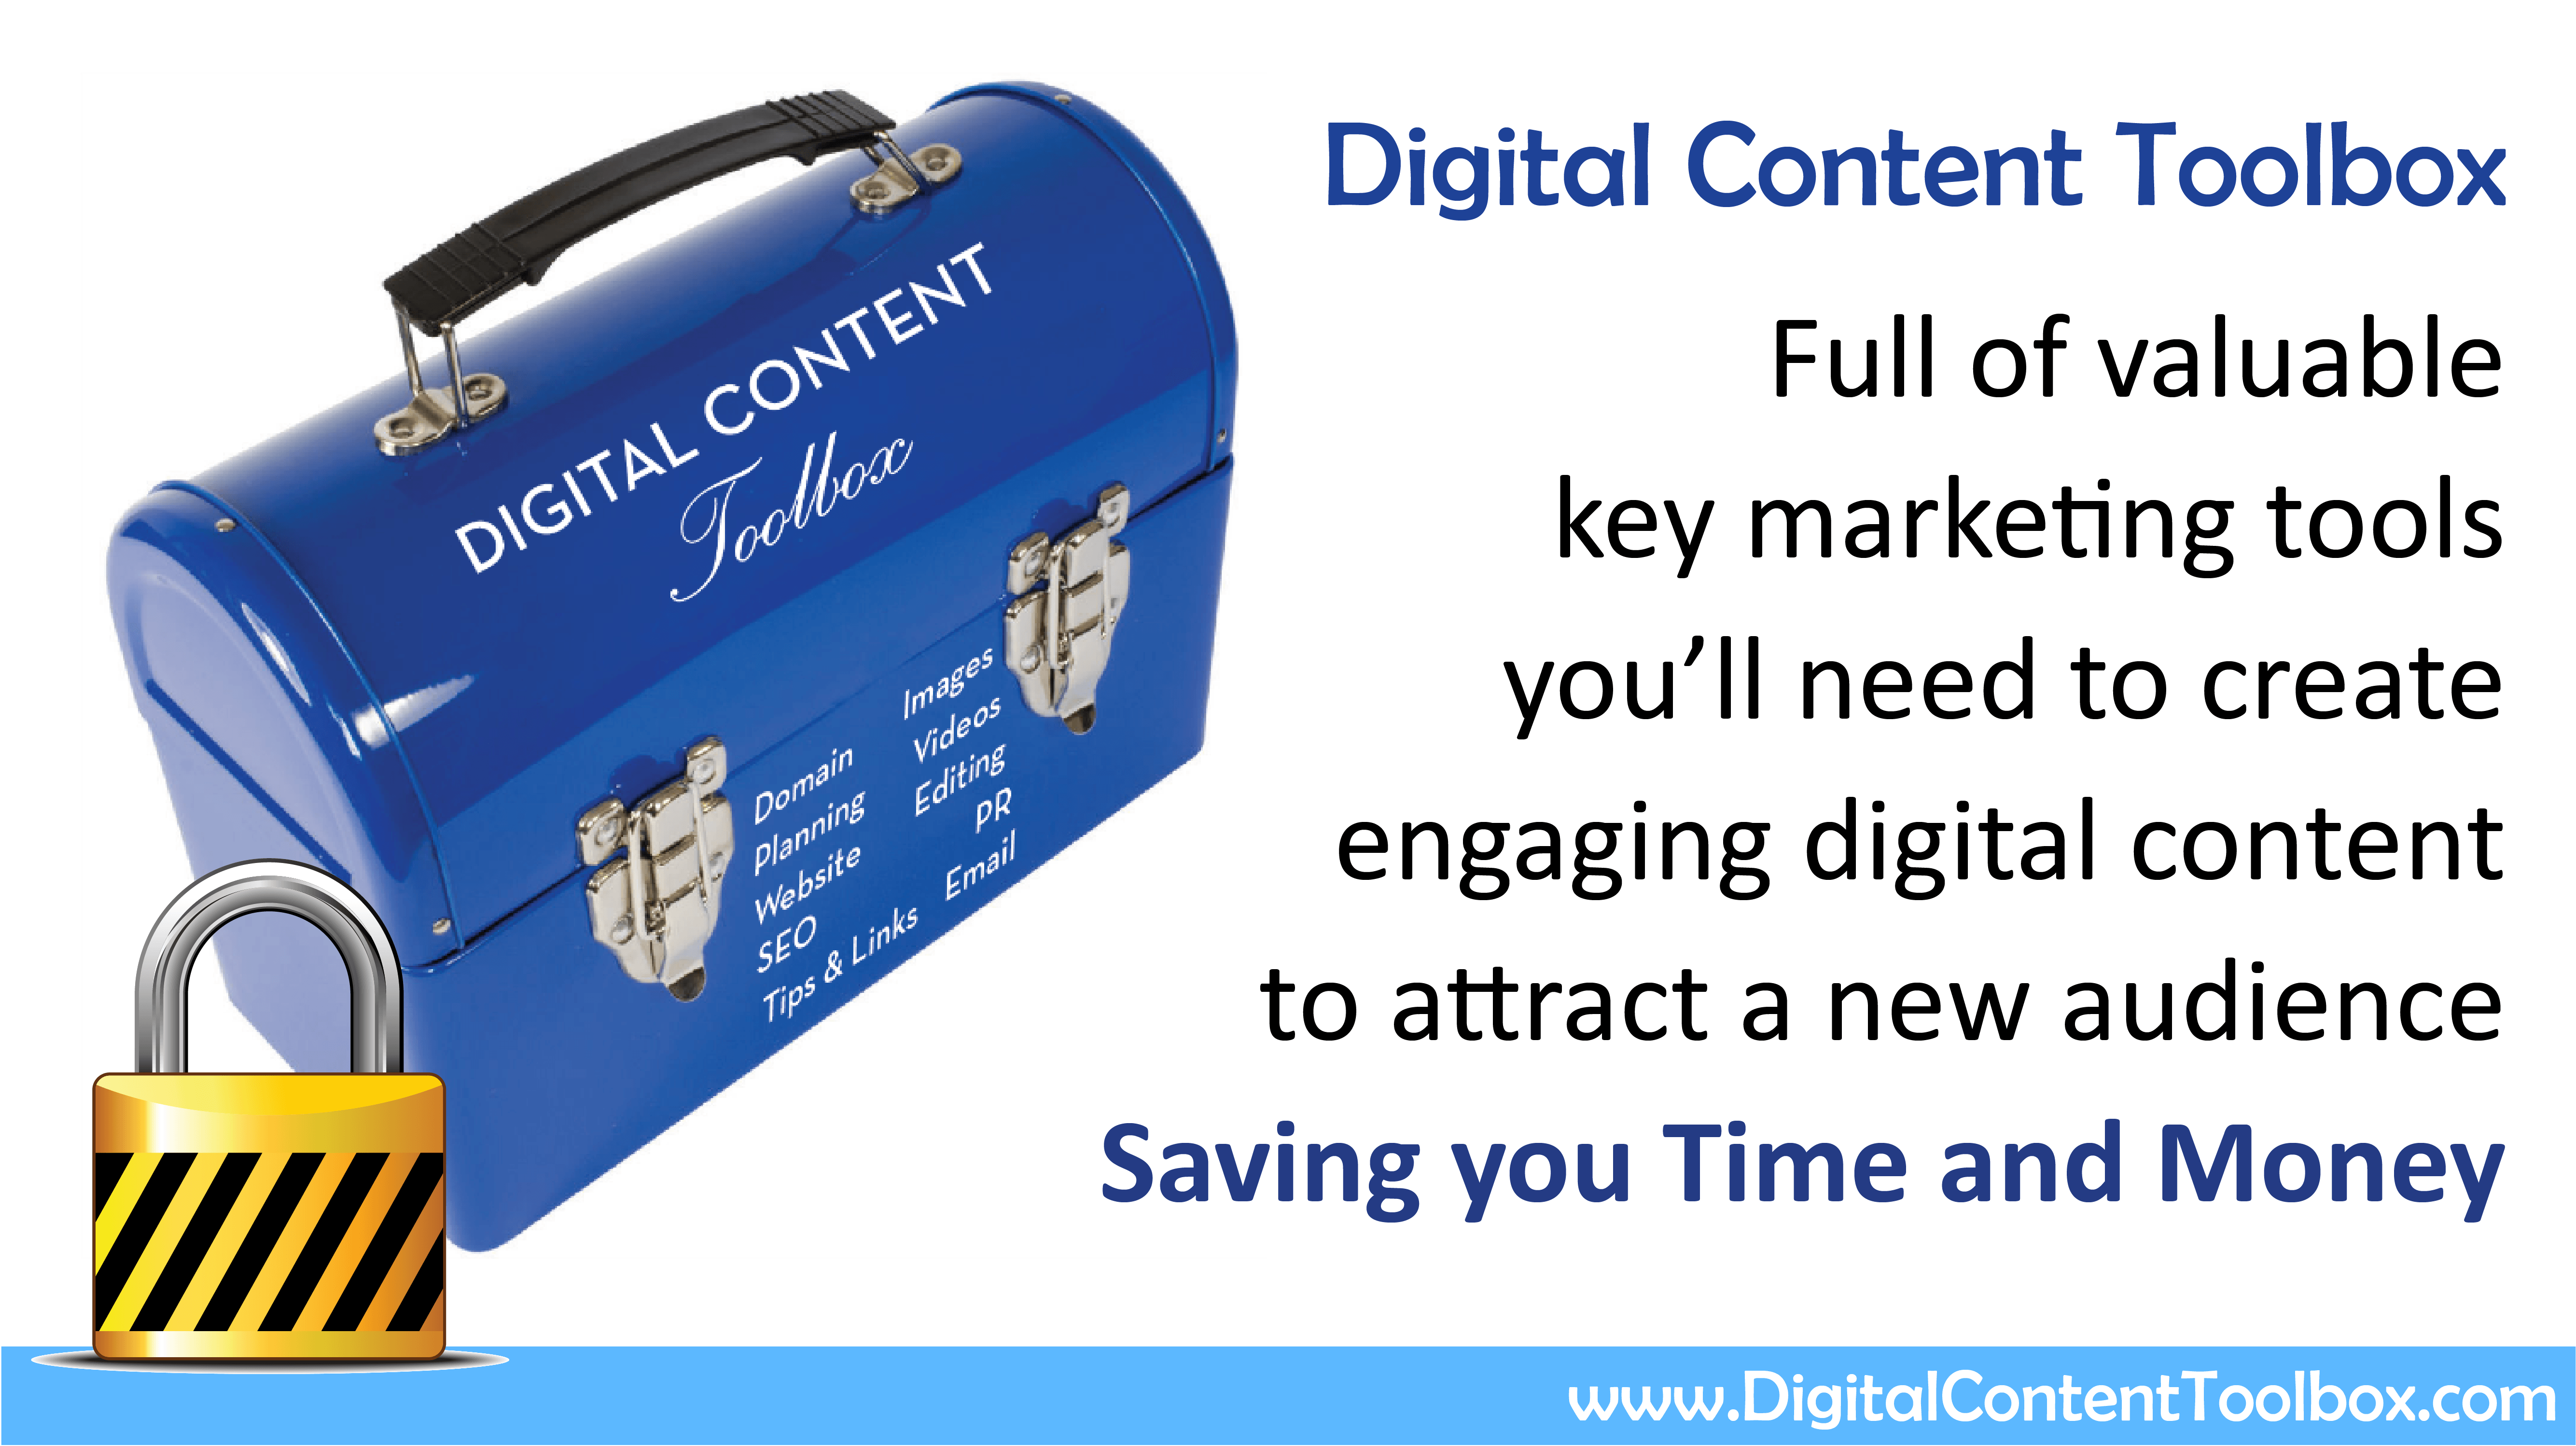 Valuable content tools